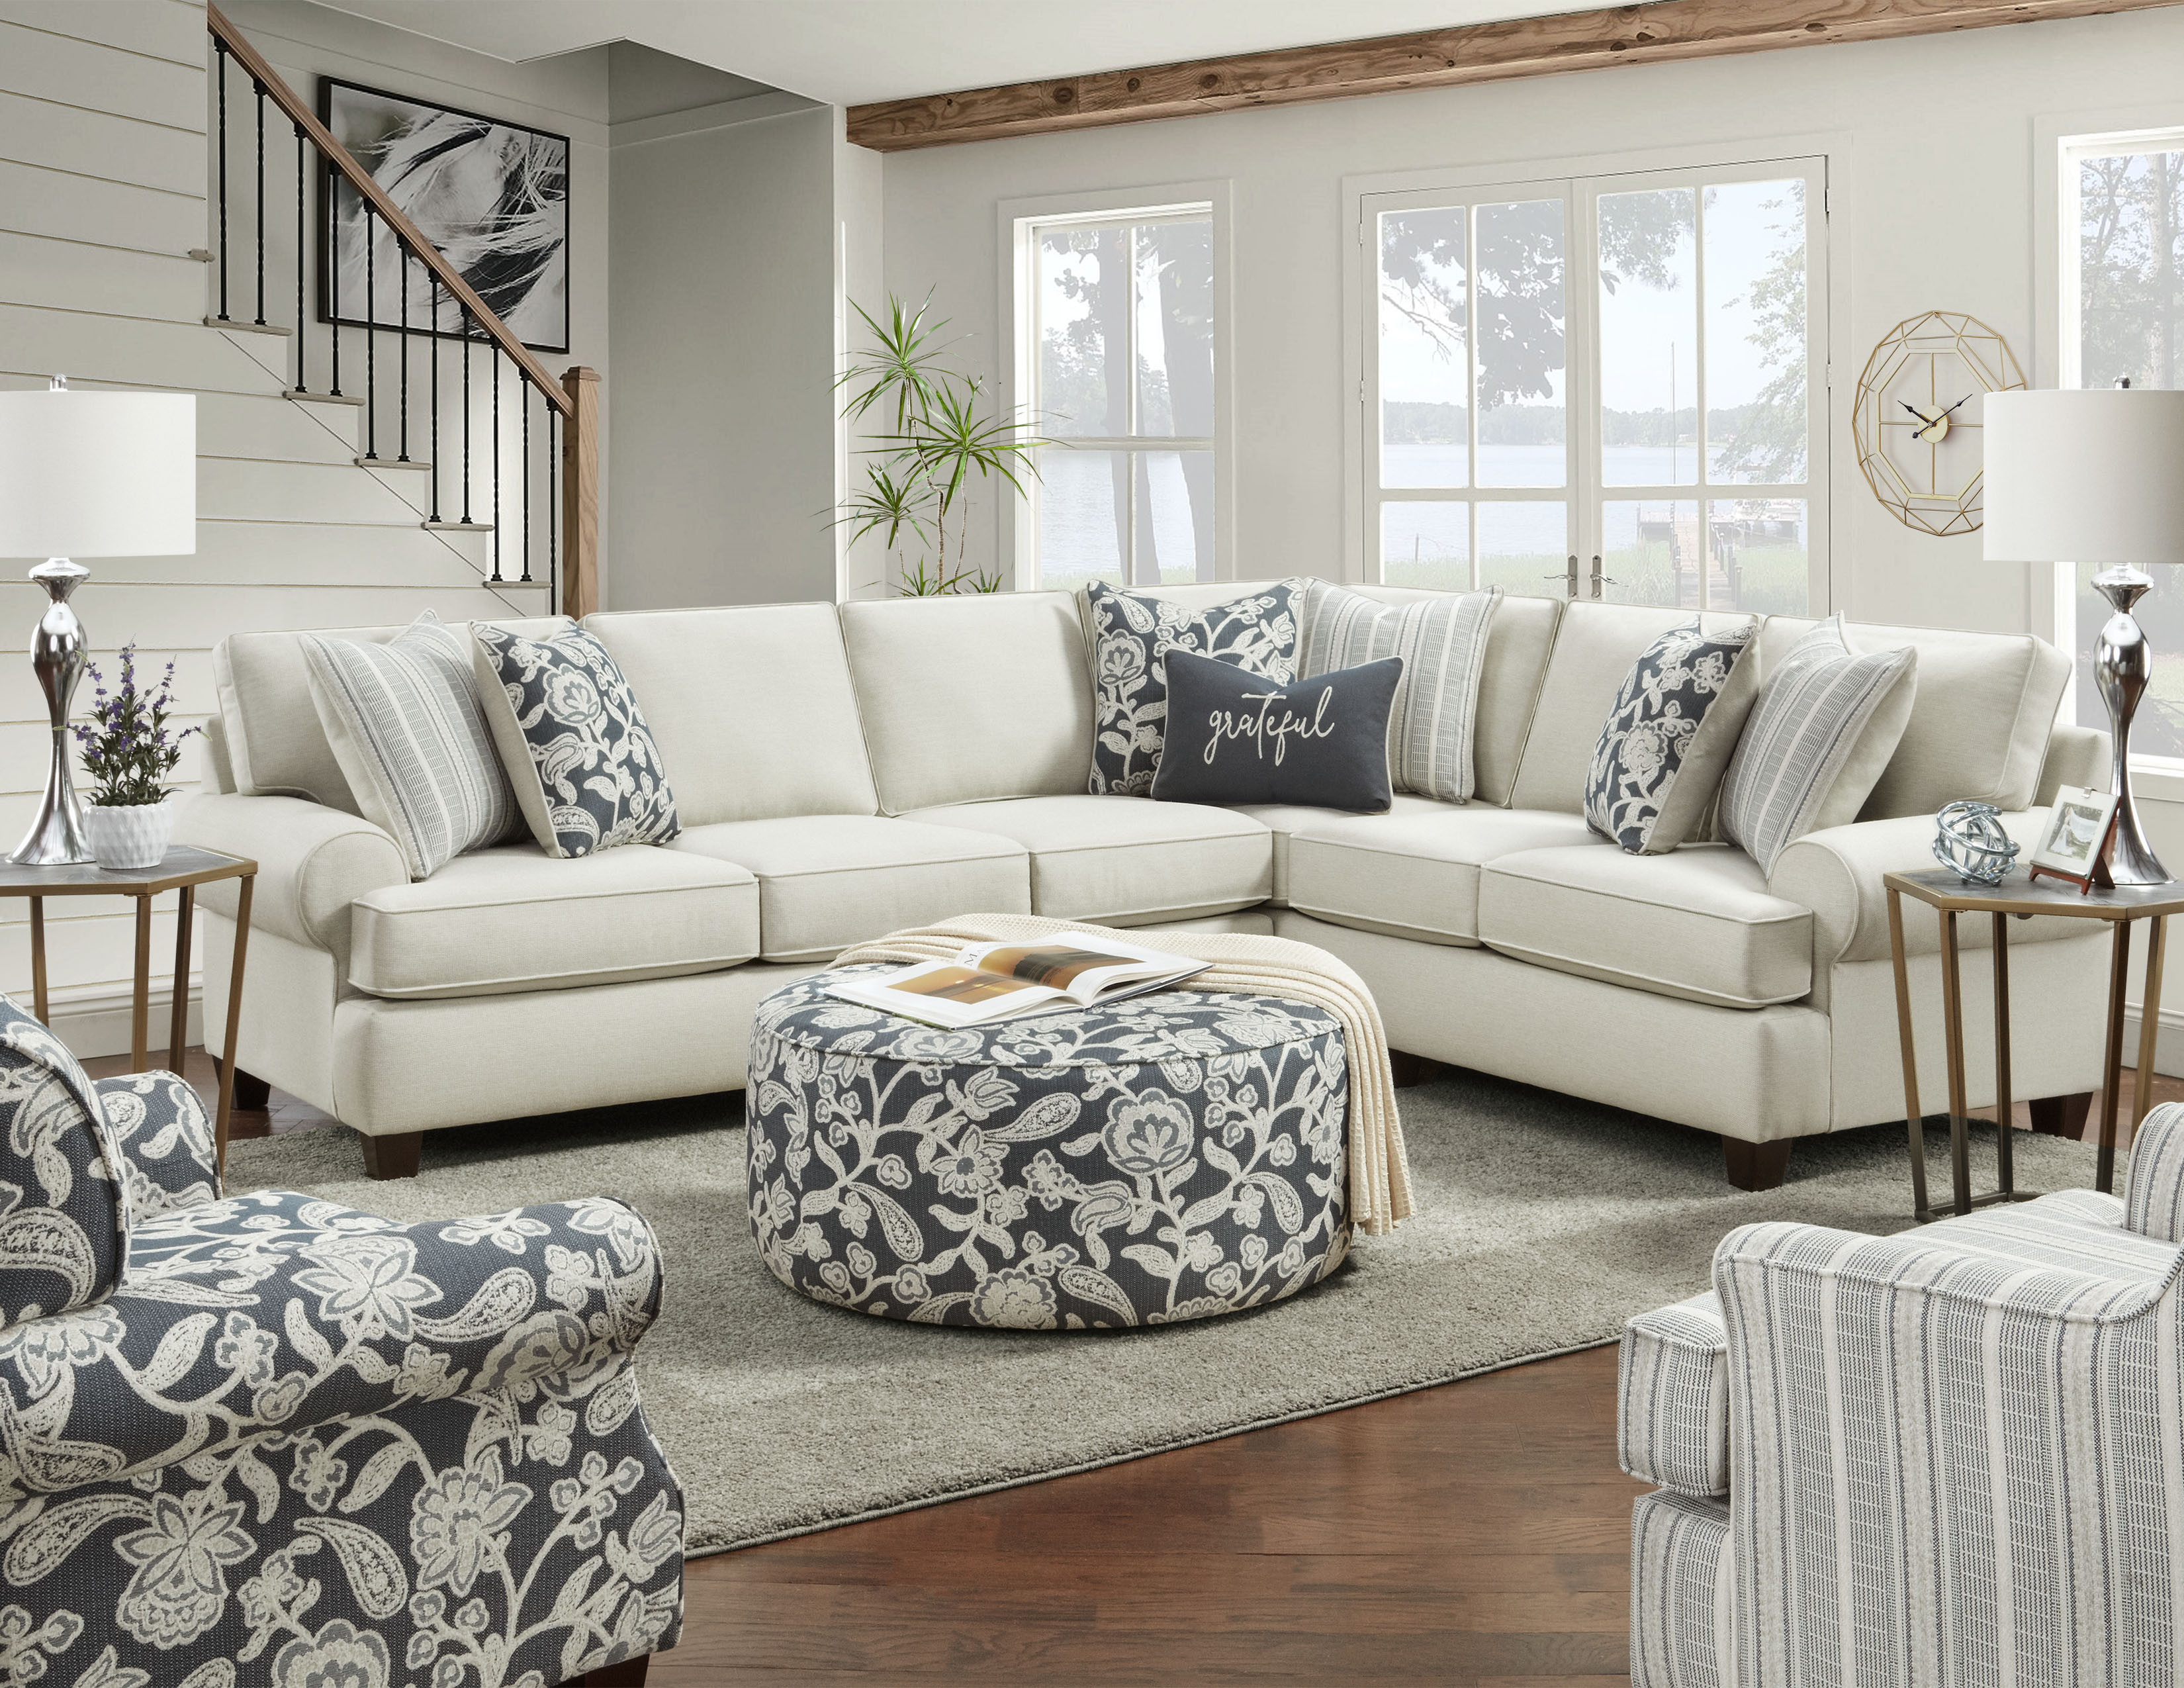 Fusion Furniture Awesome Oatmeal room collection